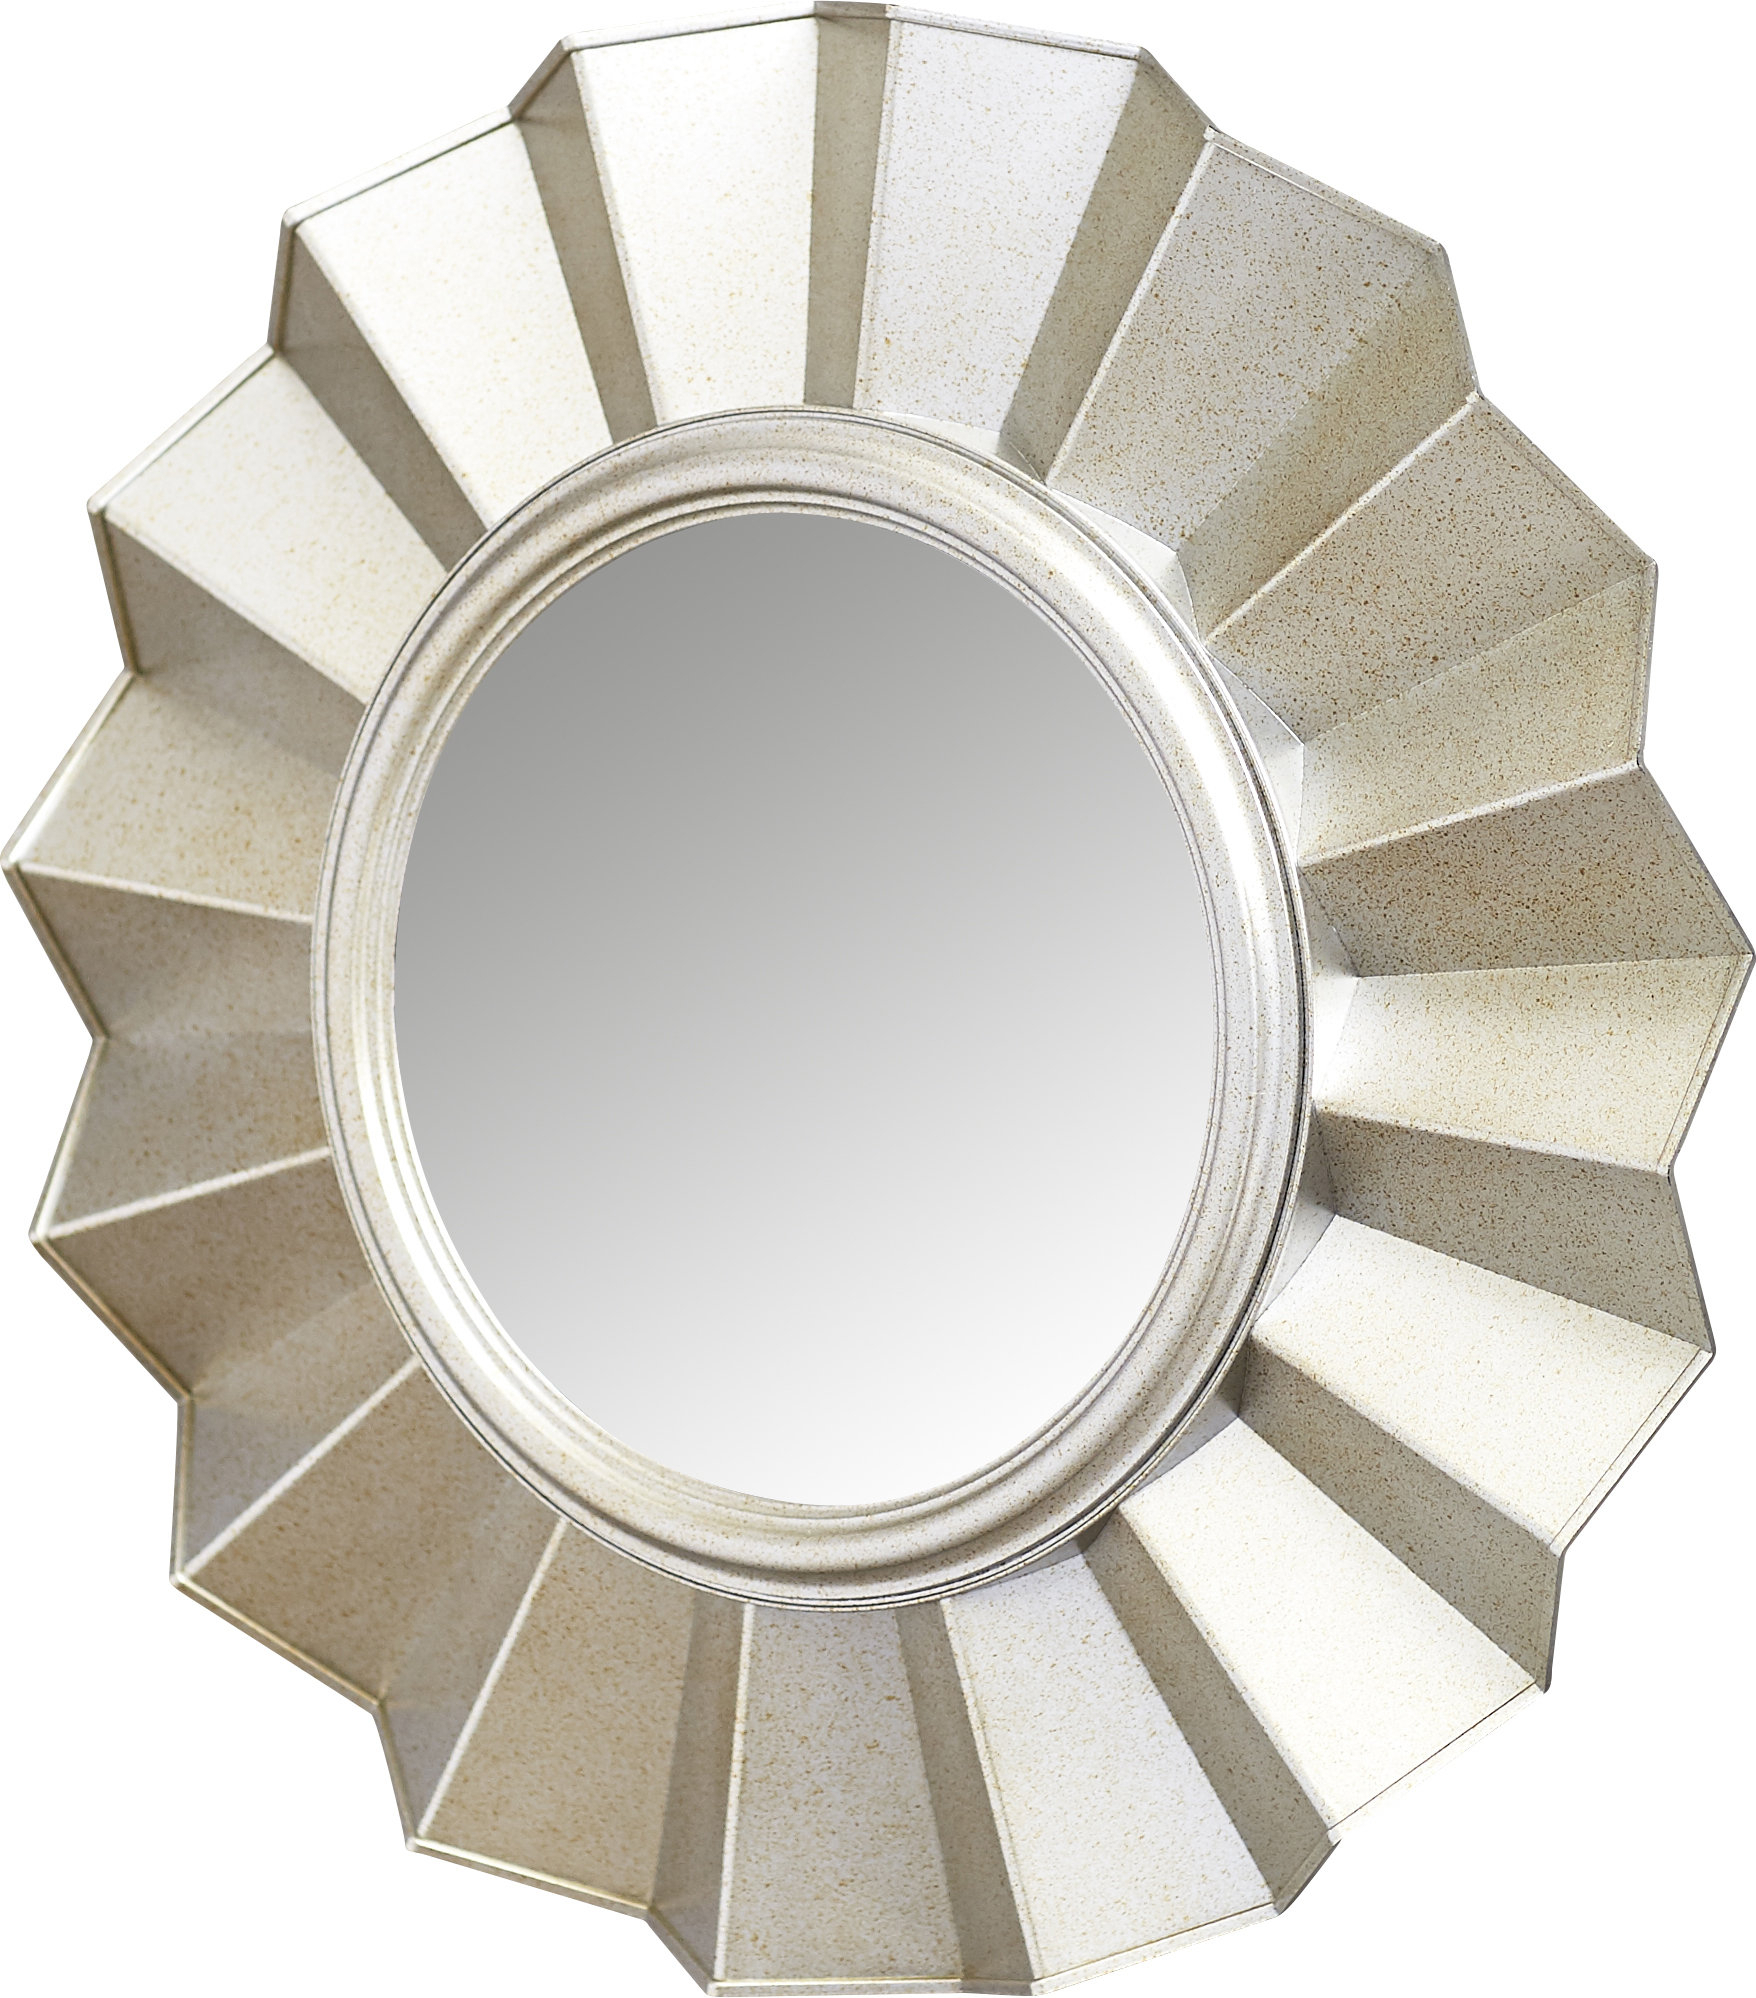 Vertical Round Wall Mirror in Pennsburg Rectangle Wall Mirrors (Image 25 of 30)